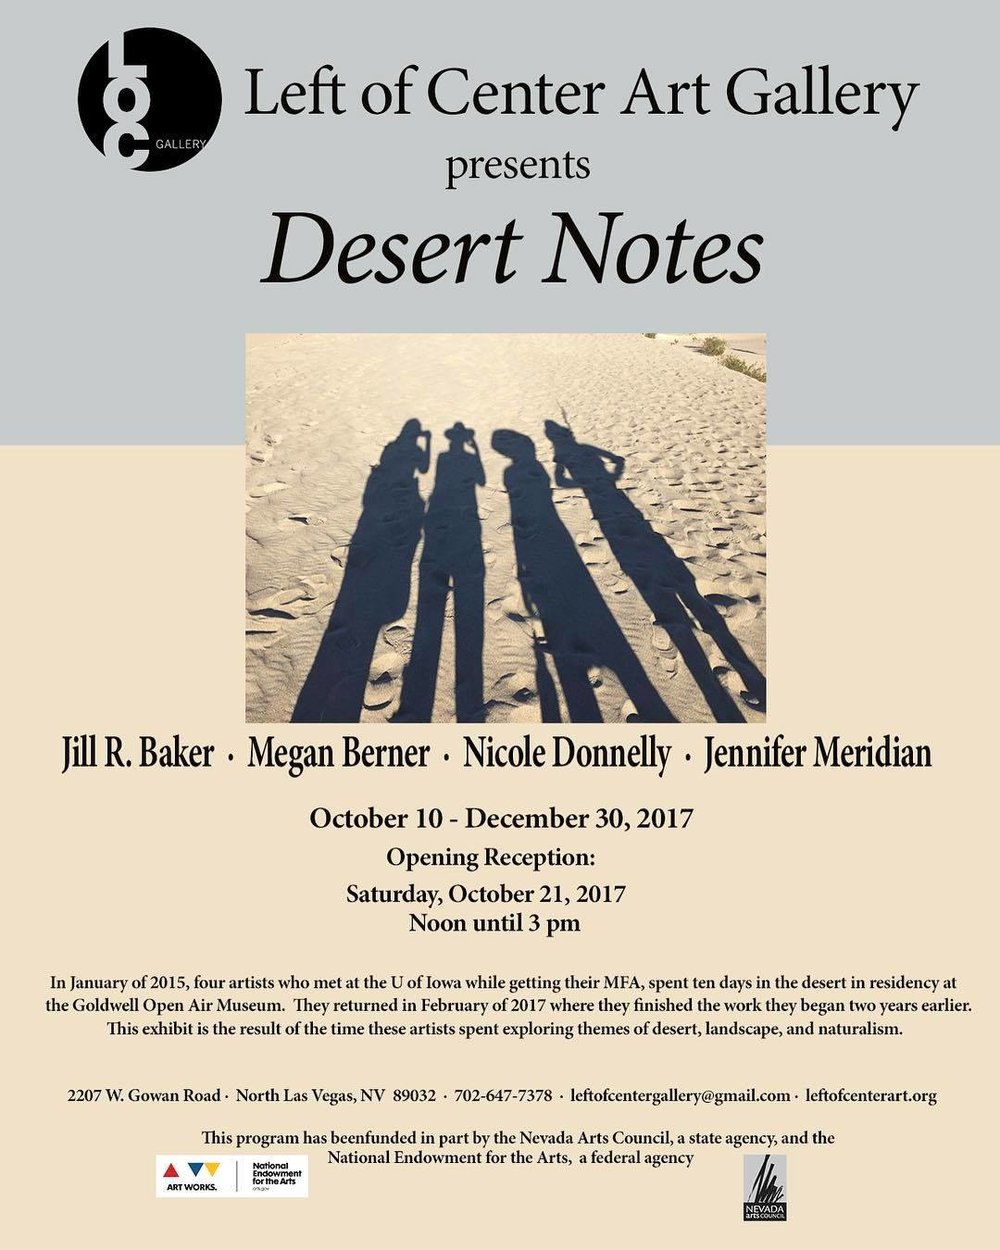 desert notes left of center.jpg